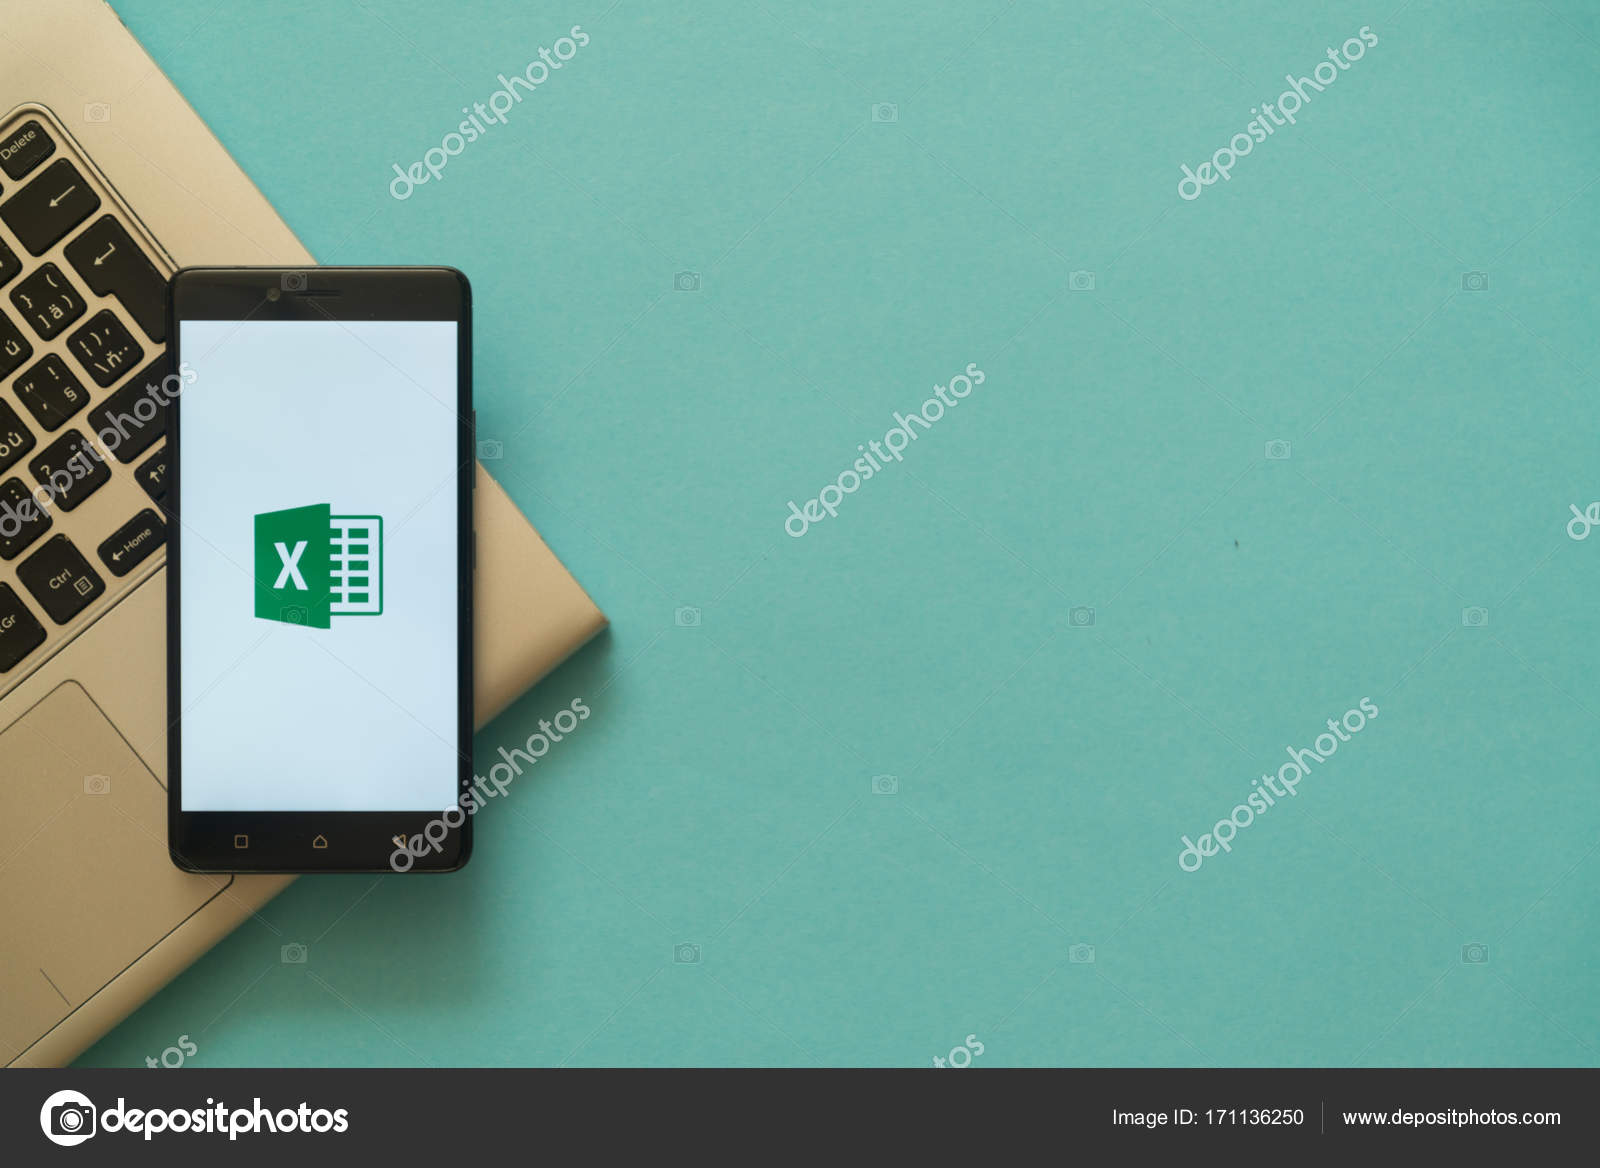 microsoft office excel logo on smartphone placed on laptop keyboard stock photo